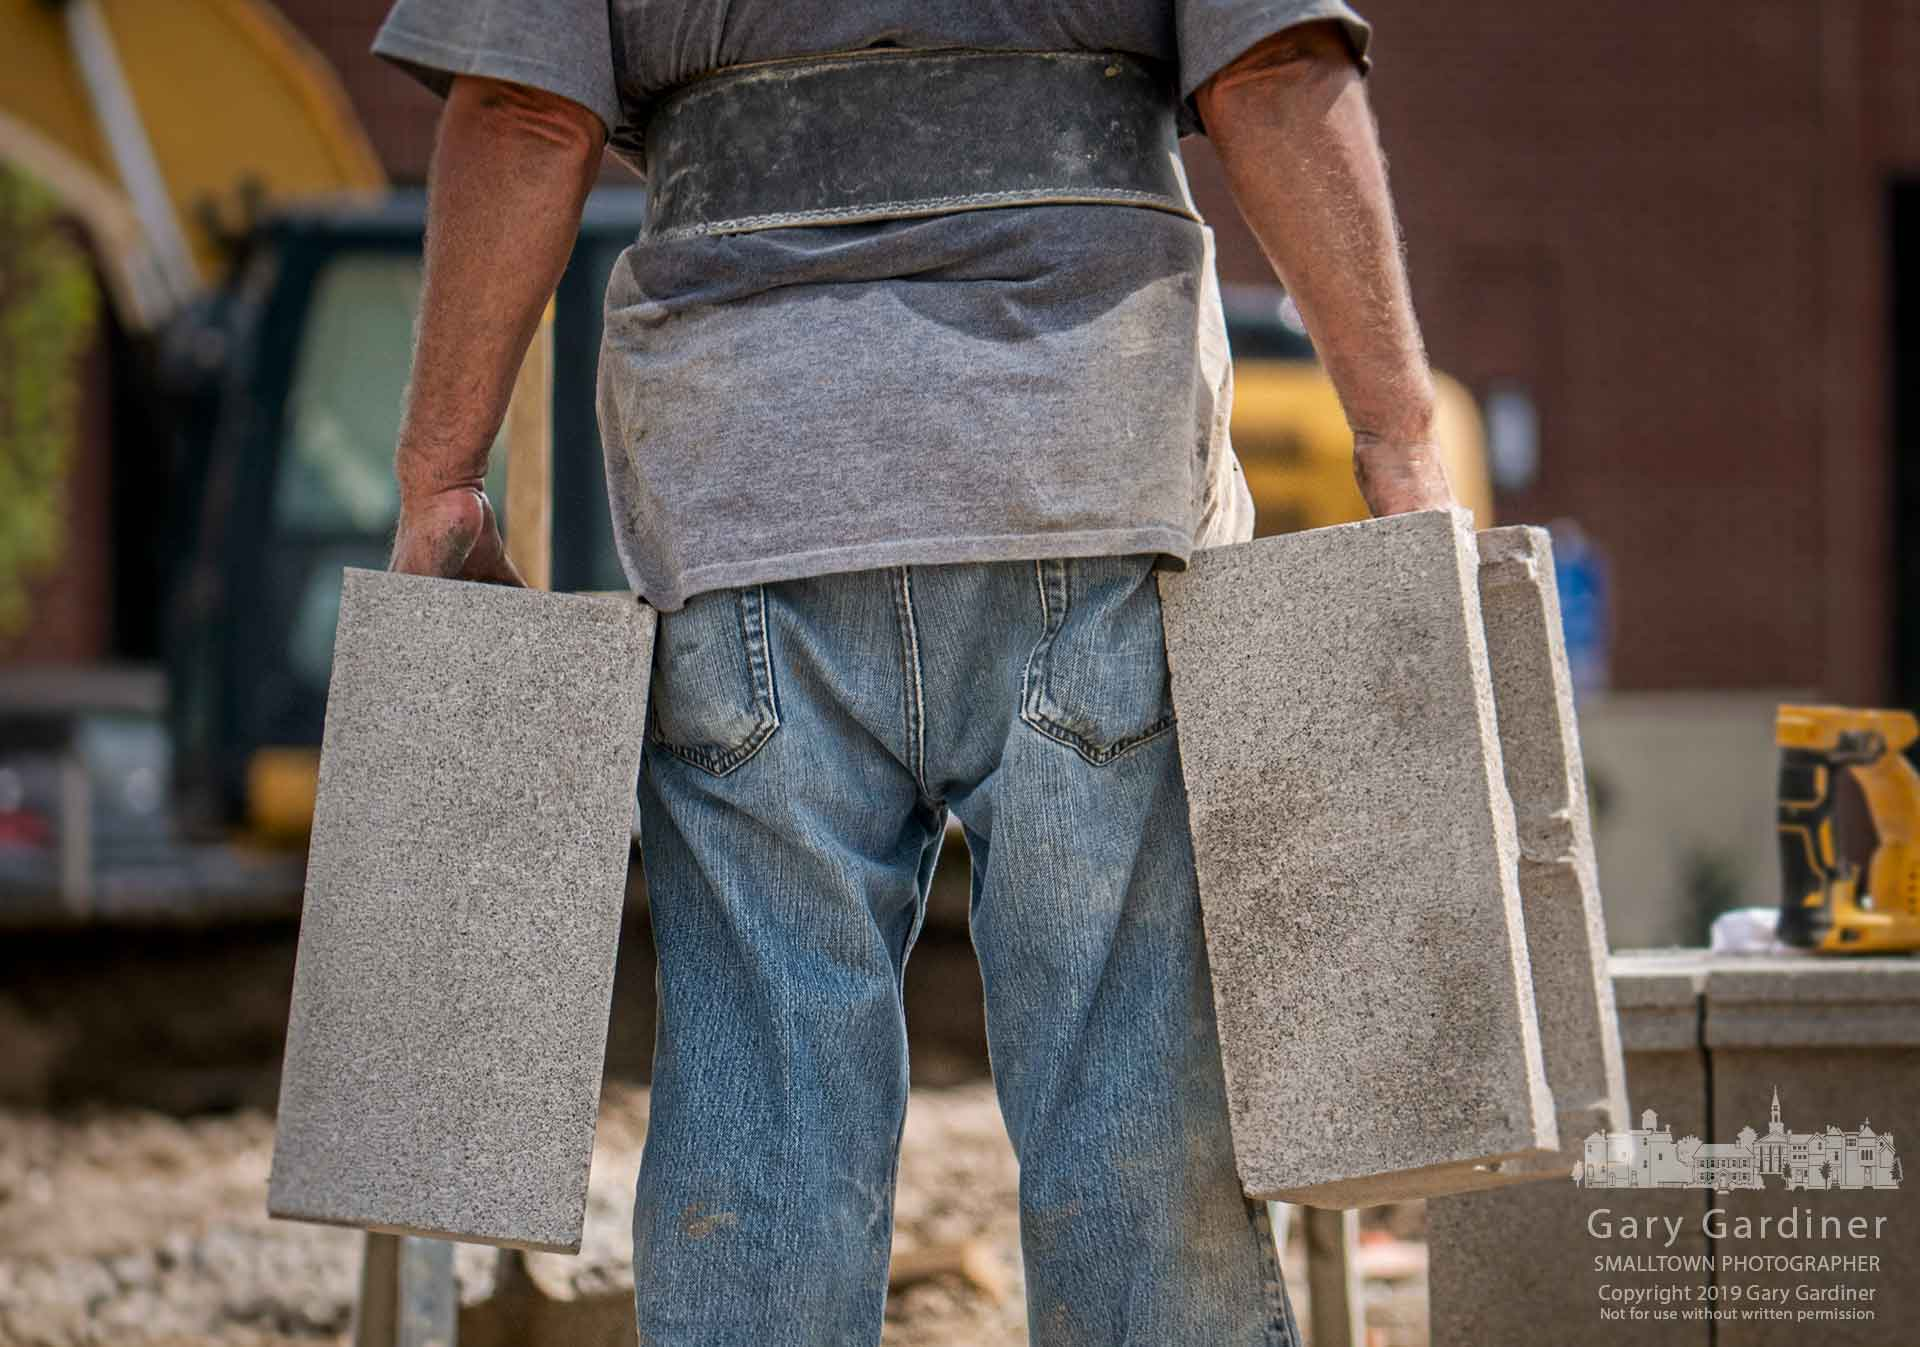 A worker carries concrete blocks across the site where his team is building the foundation for a new set of restaurants at Polaris Parkway and Meridian Way. My Final Photo for July 18, 2019.